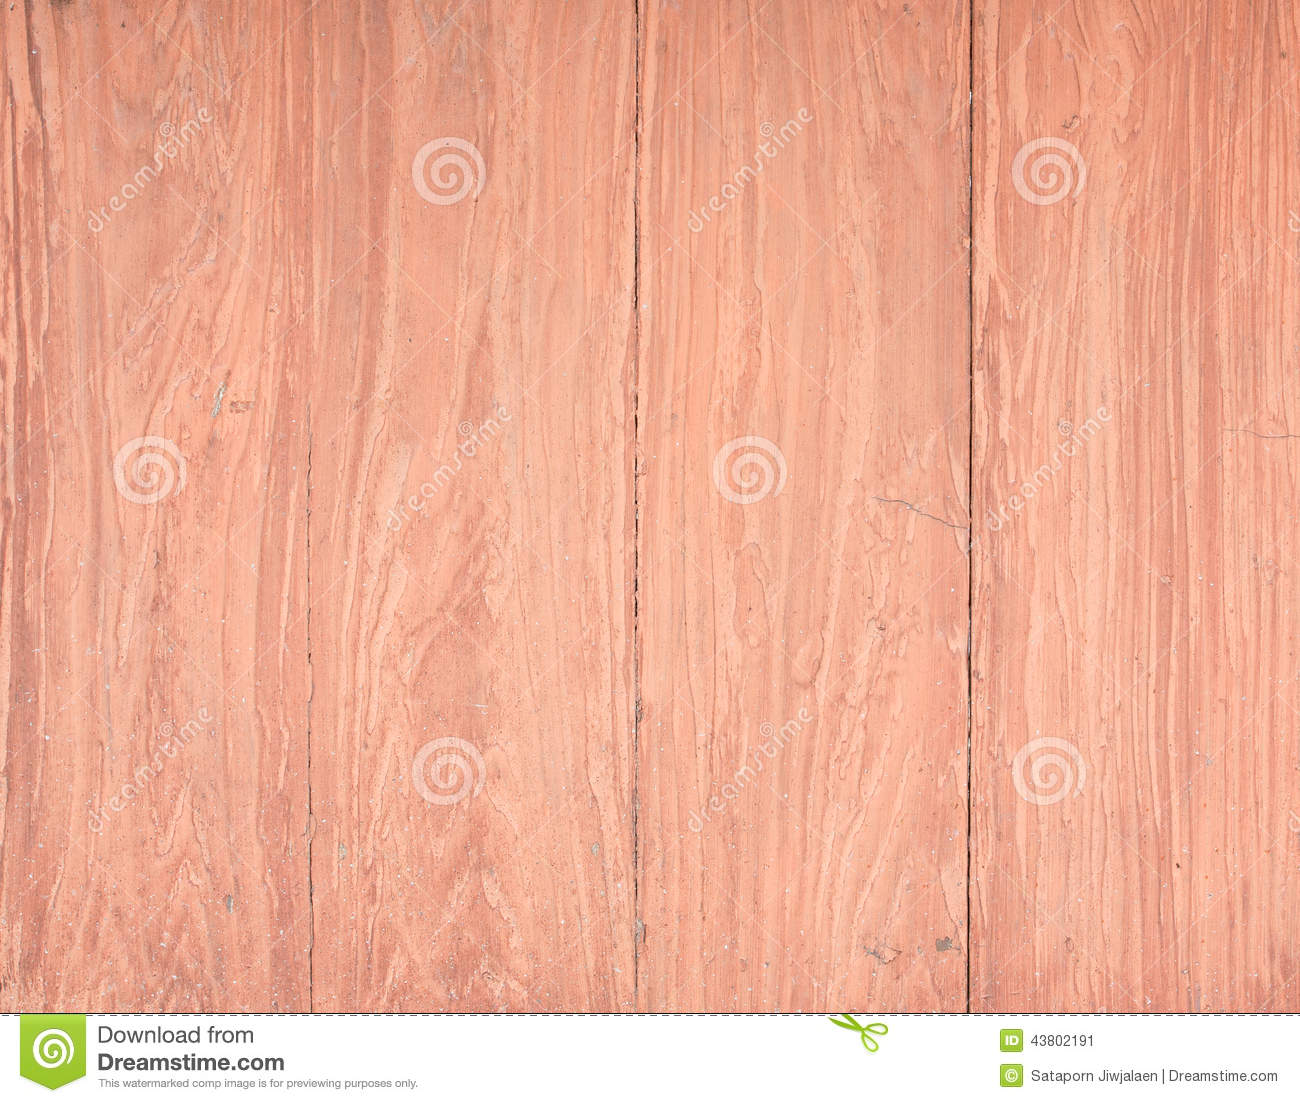 High Resolution Natural Distressed Wood Background And Texture